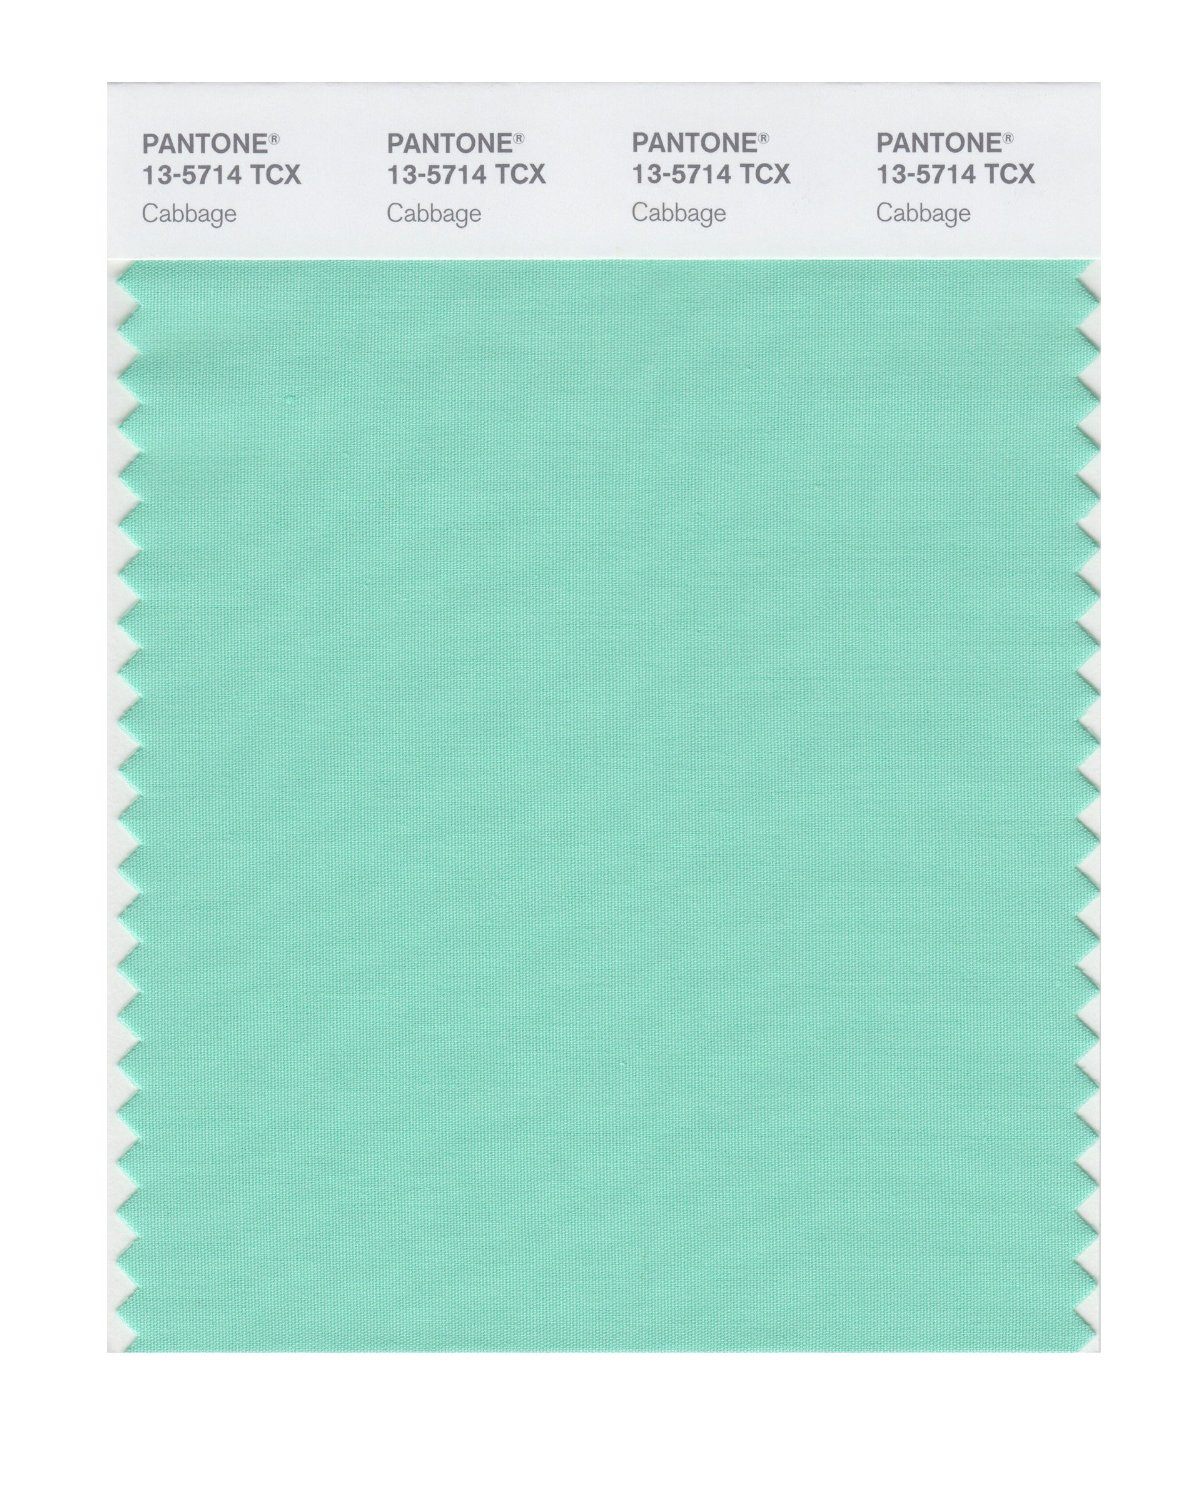 Pantone Smart Swatch 13-5714 Cabbage